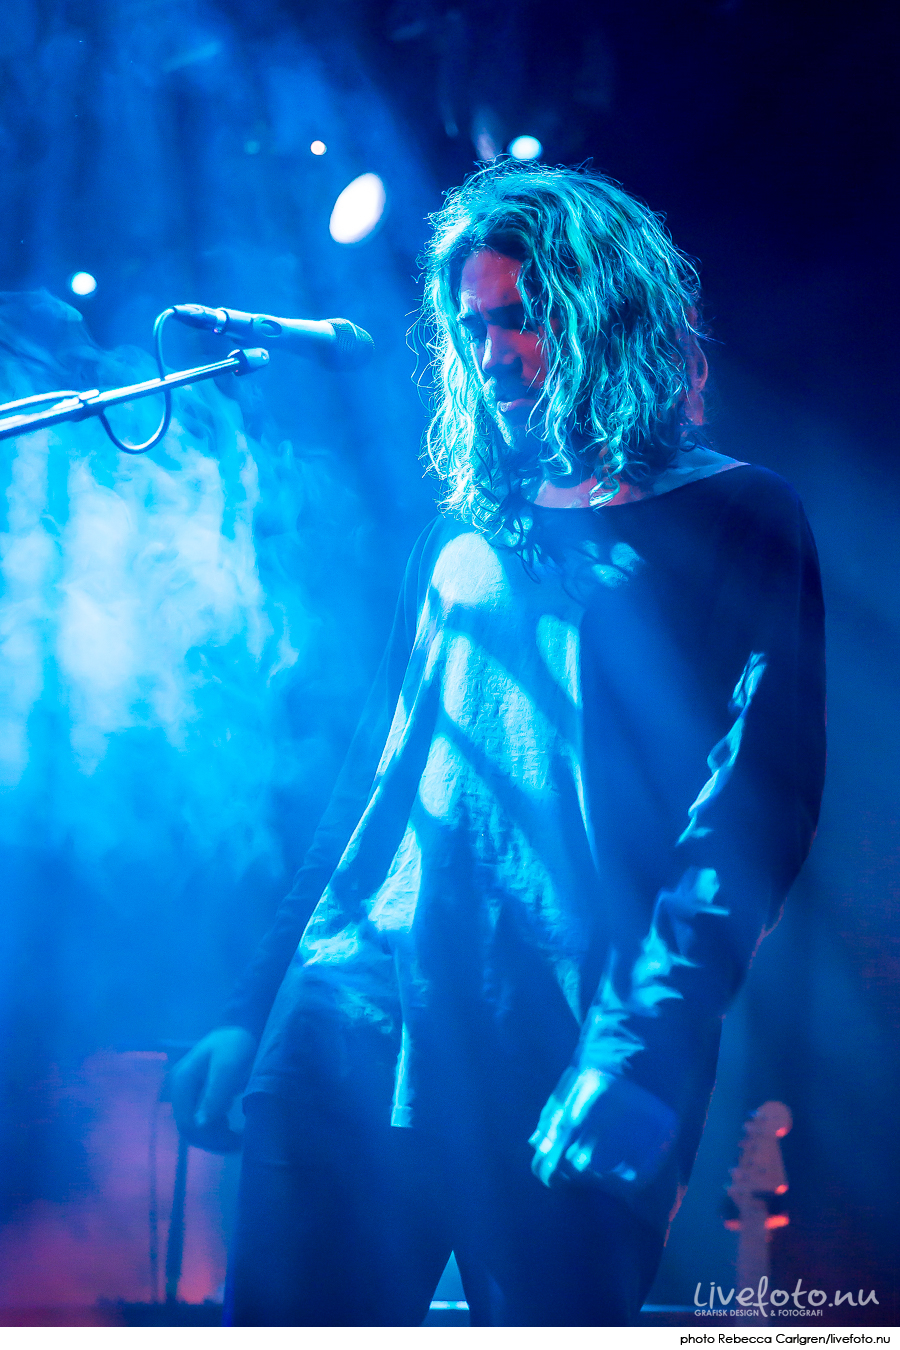 160321-Matt-Corby_photo_Rebecca-Carlgren_livefoto.nu_-5